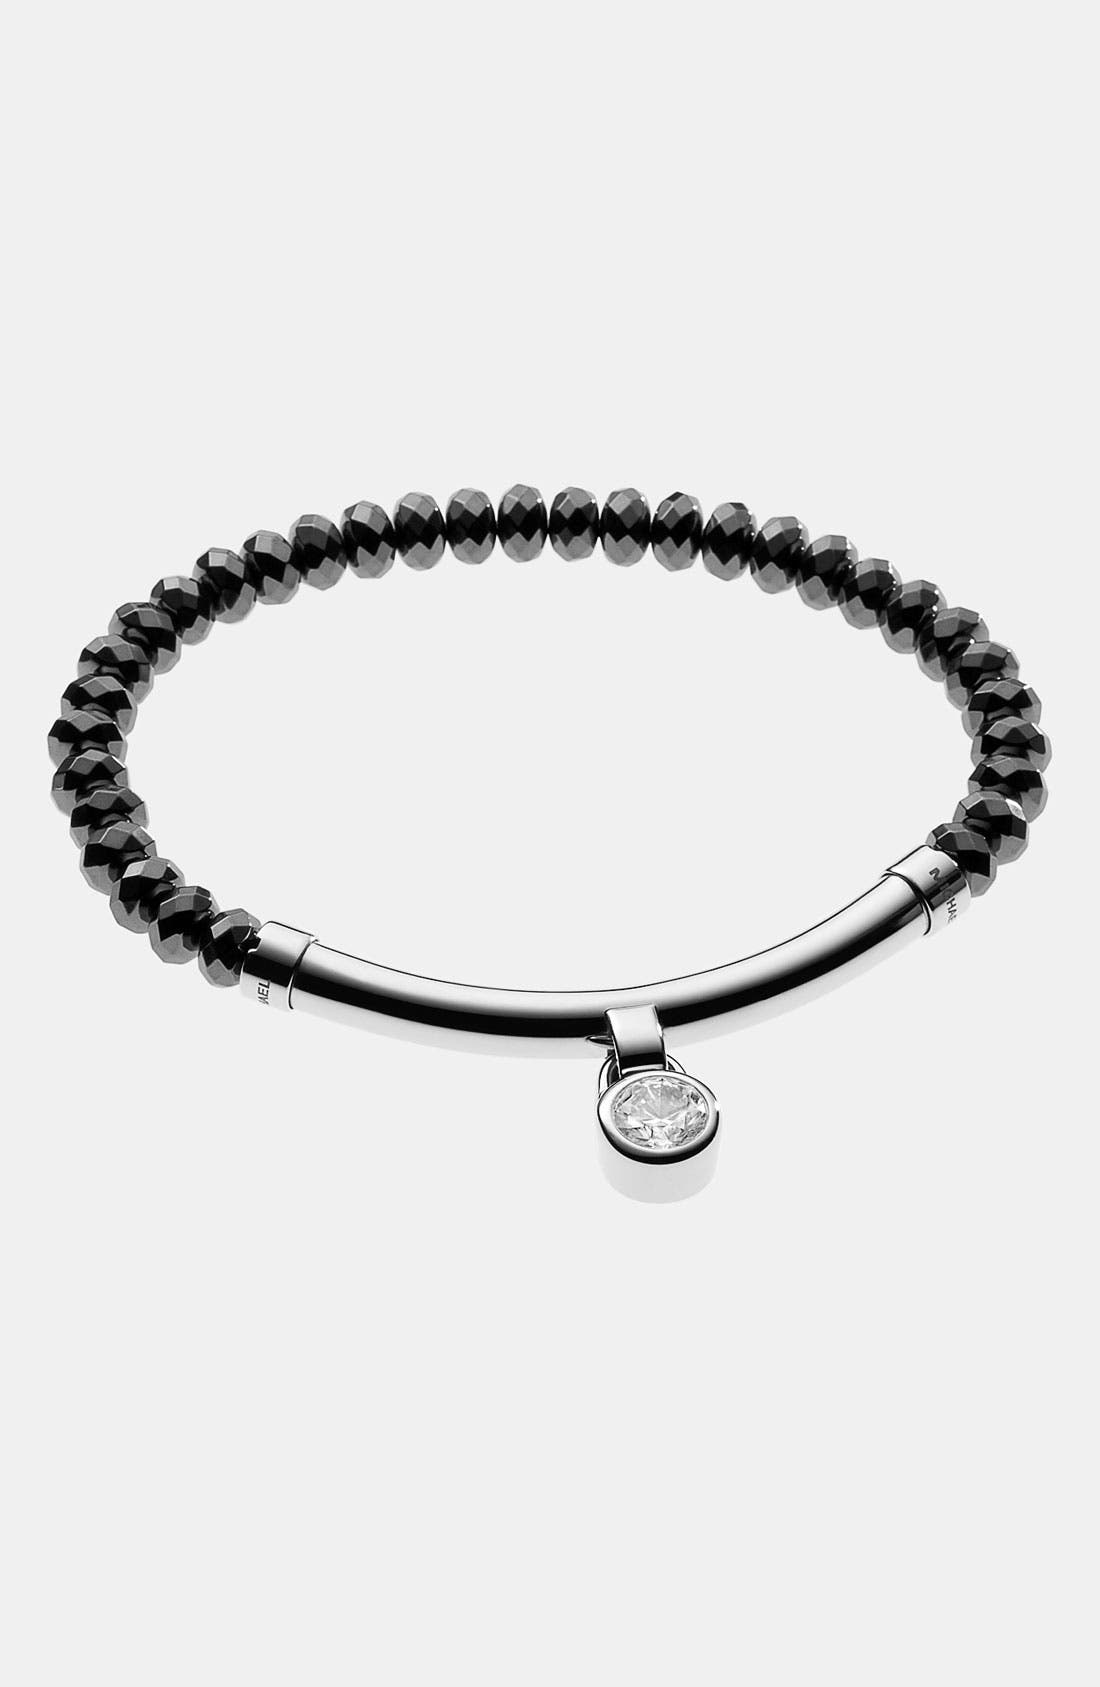 Main Image - Michael Kors 'Brilliance' Bead Stretch Bracelet